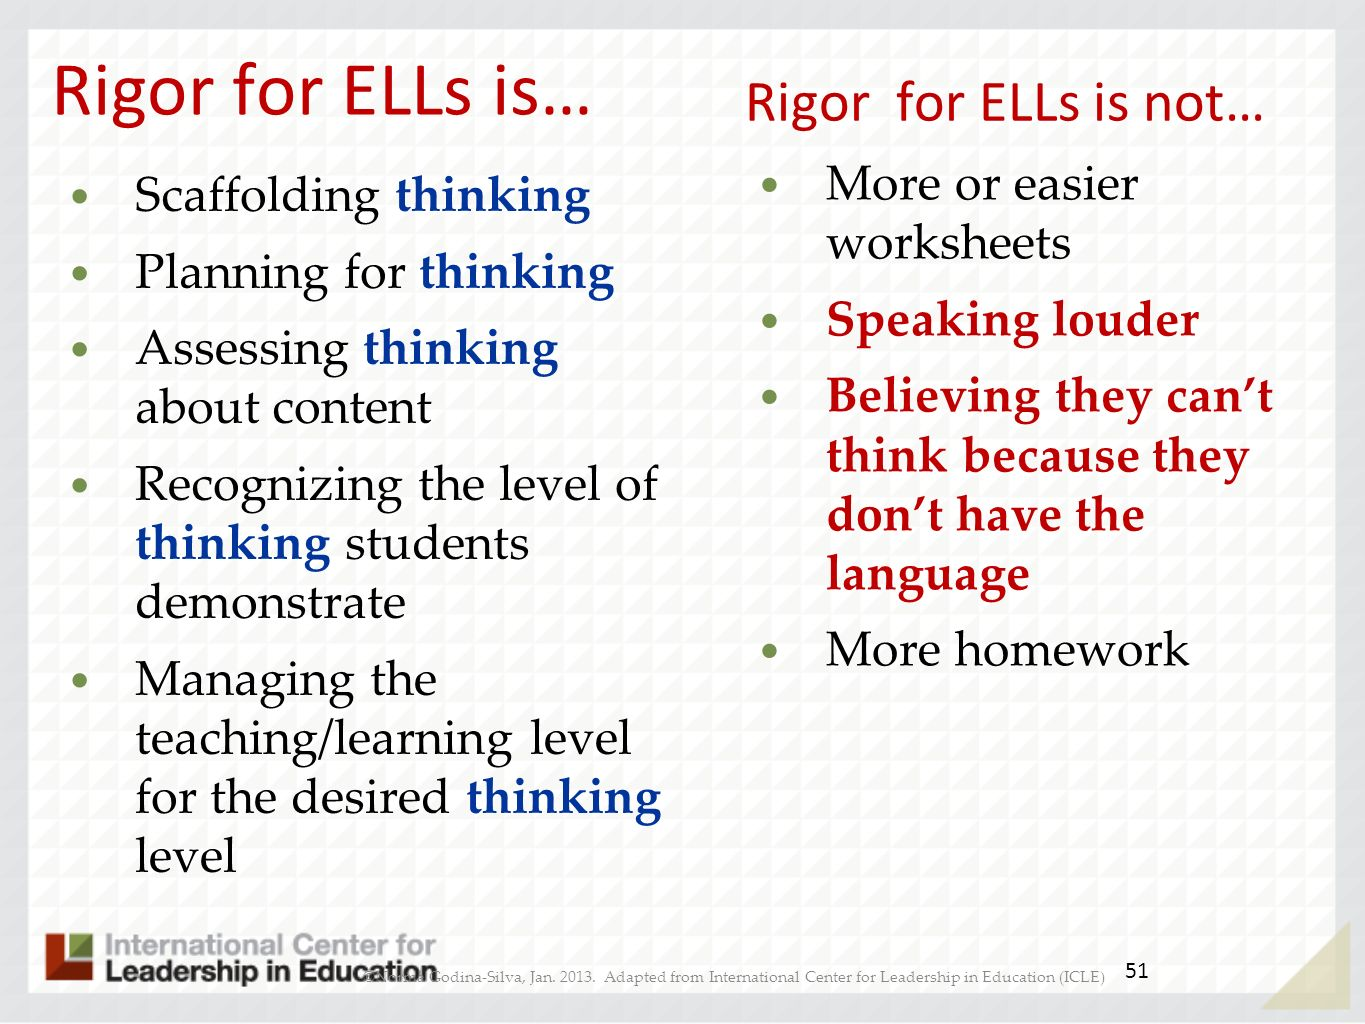 Rigor for ELLs is… Rigor for ELLs is not… More or easier worksheets